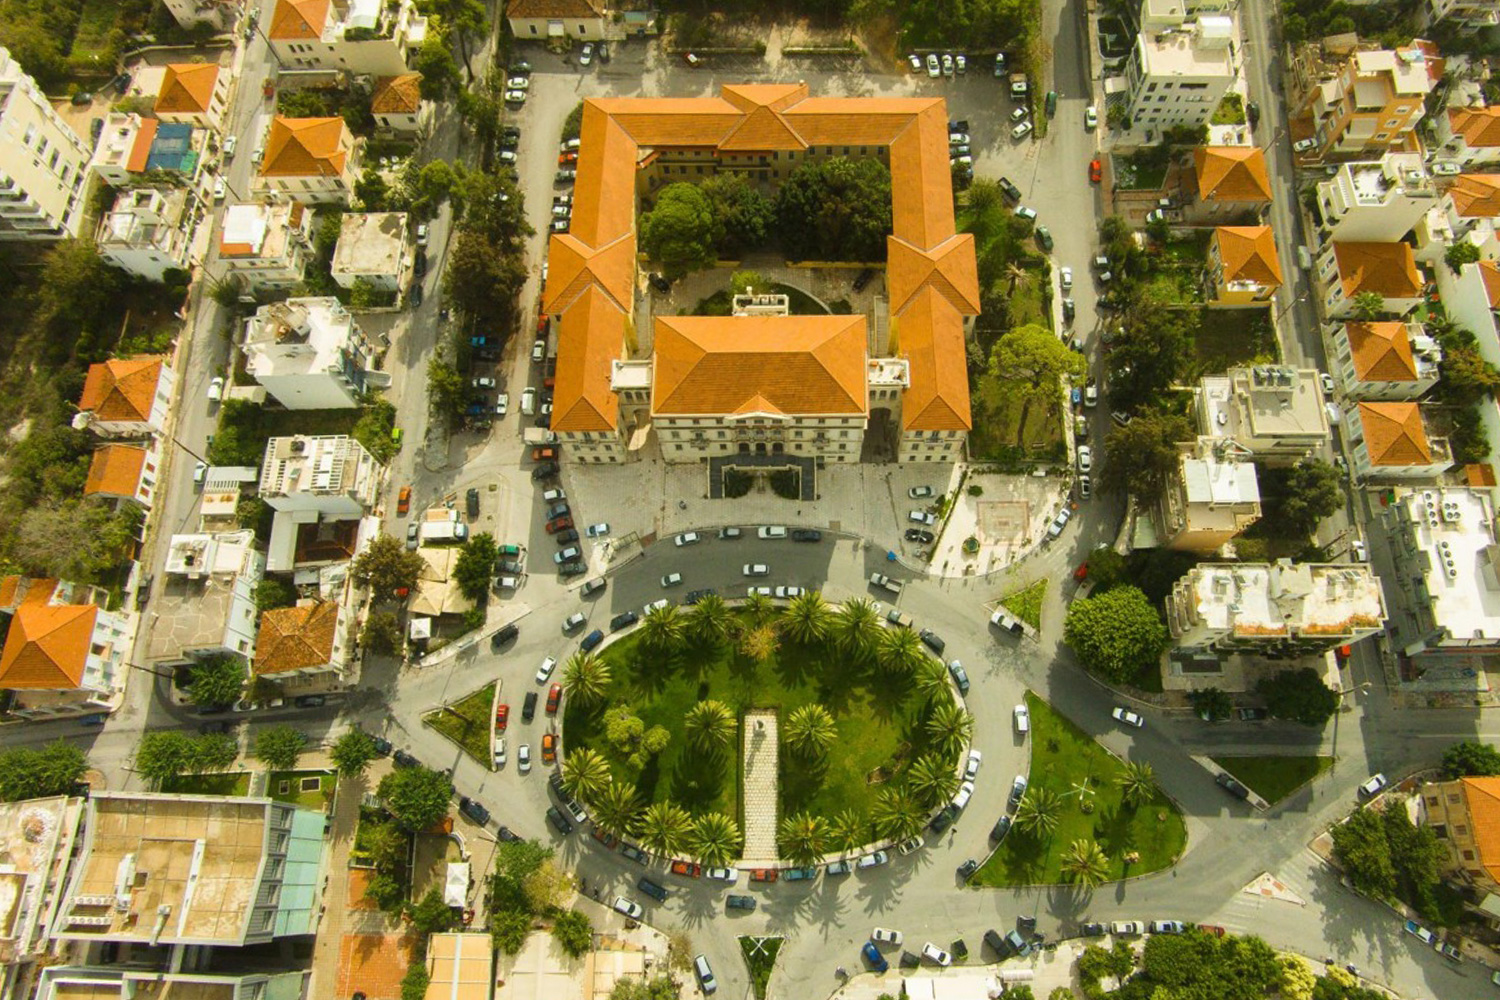 Aerial View of the Courts of Chania